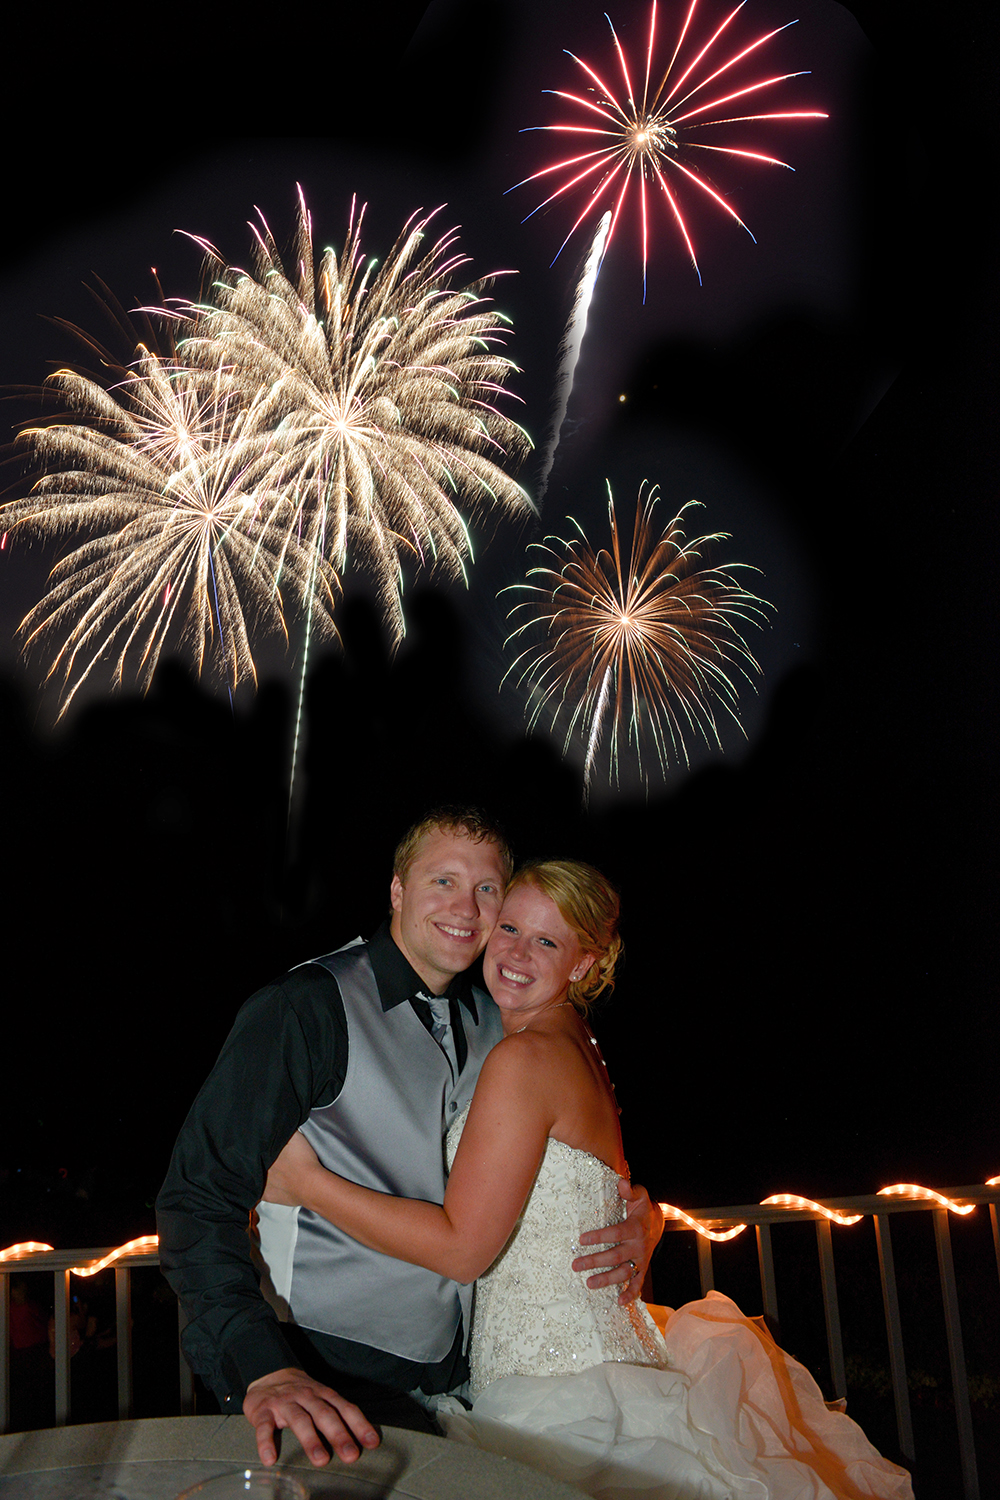 fireworks-at-a-wedding